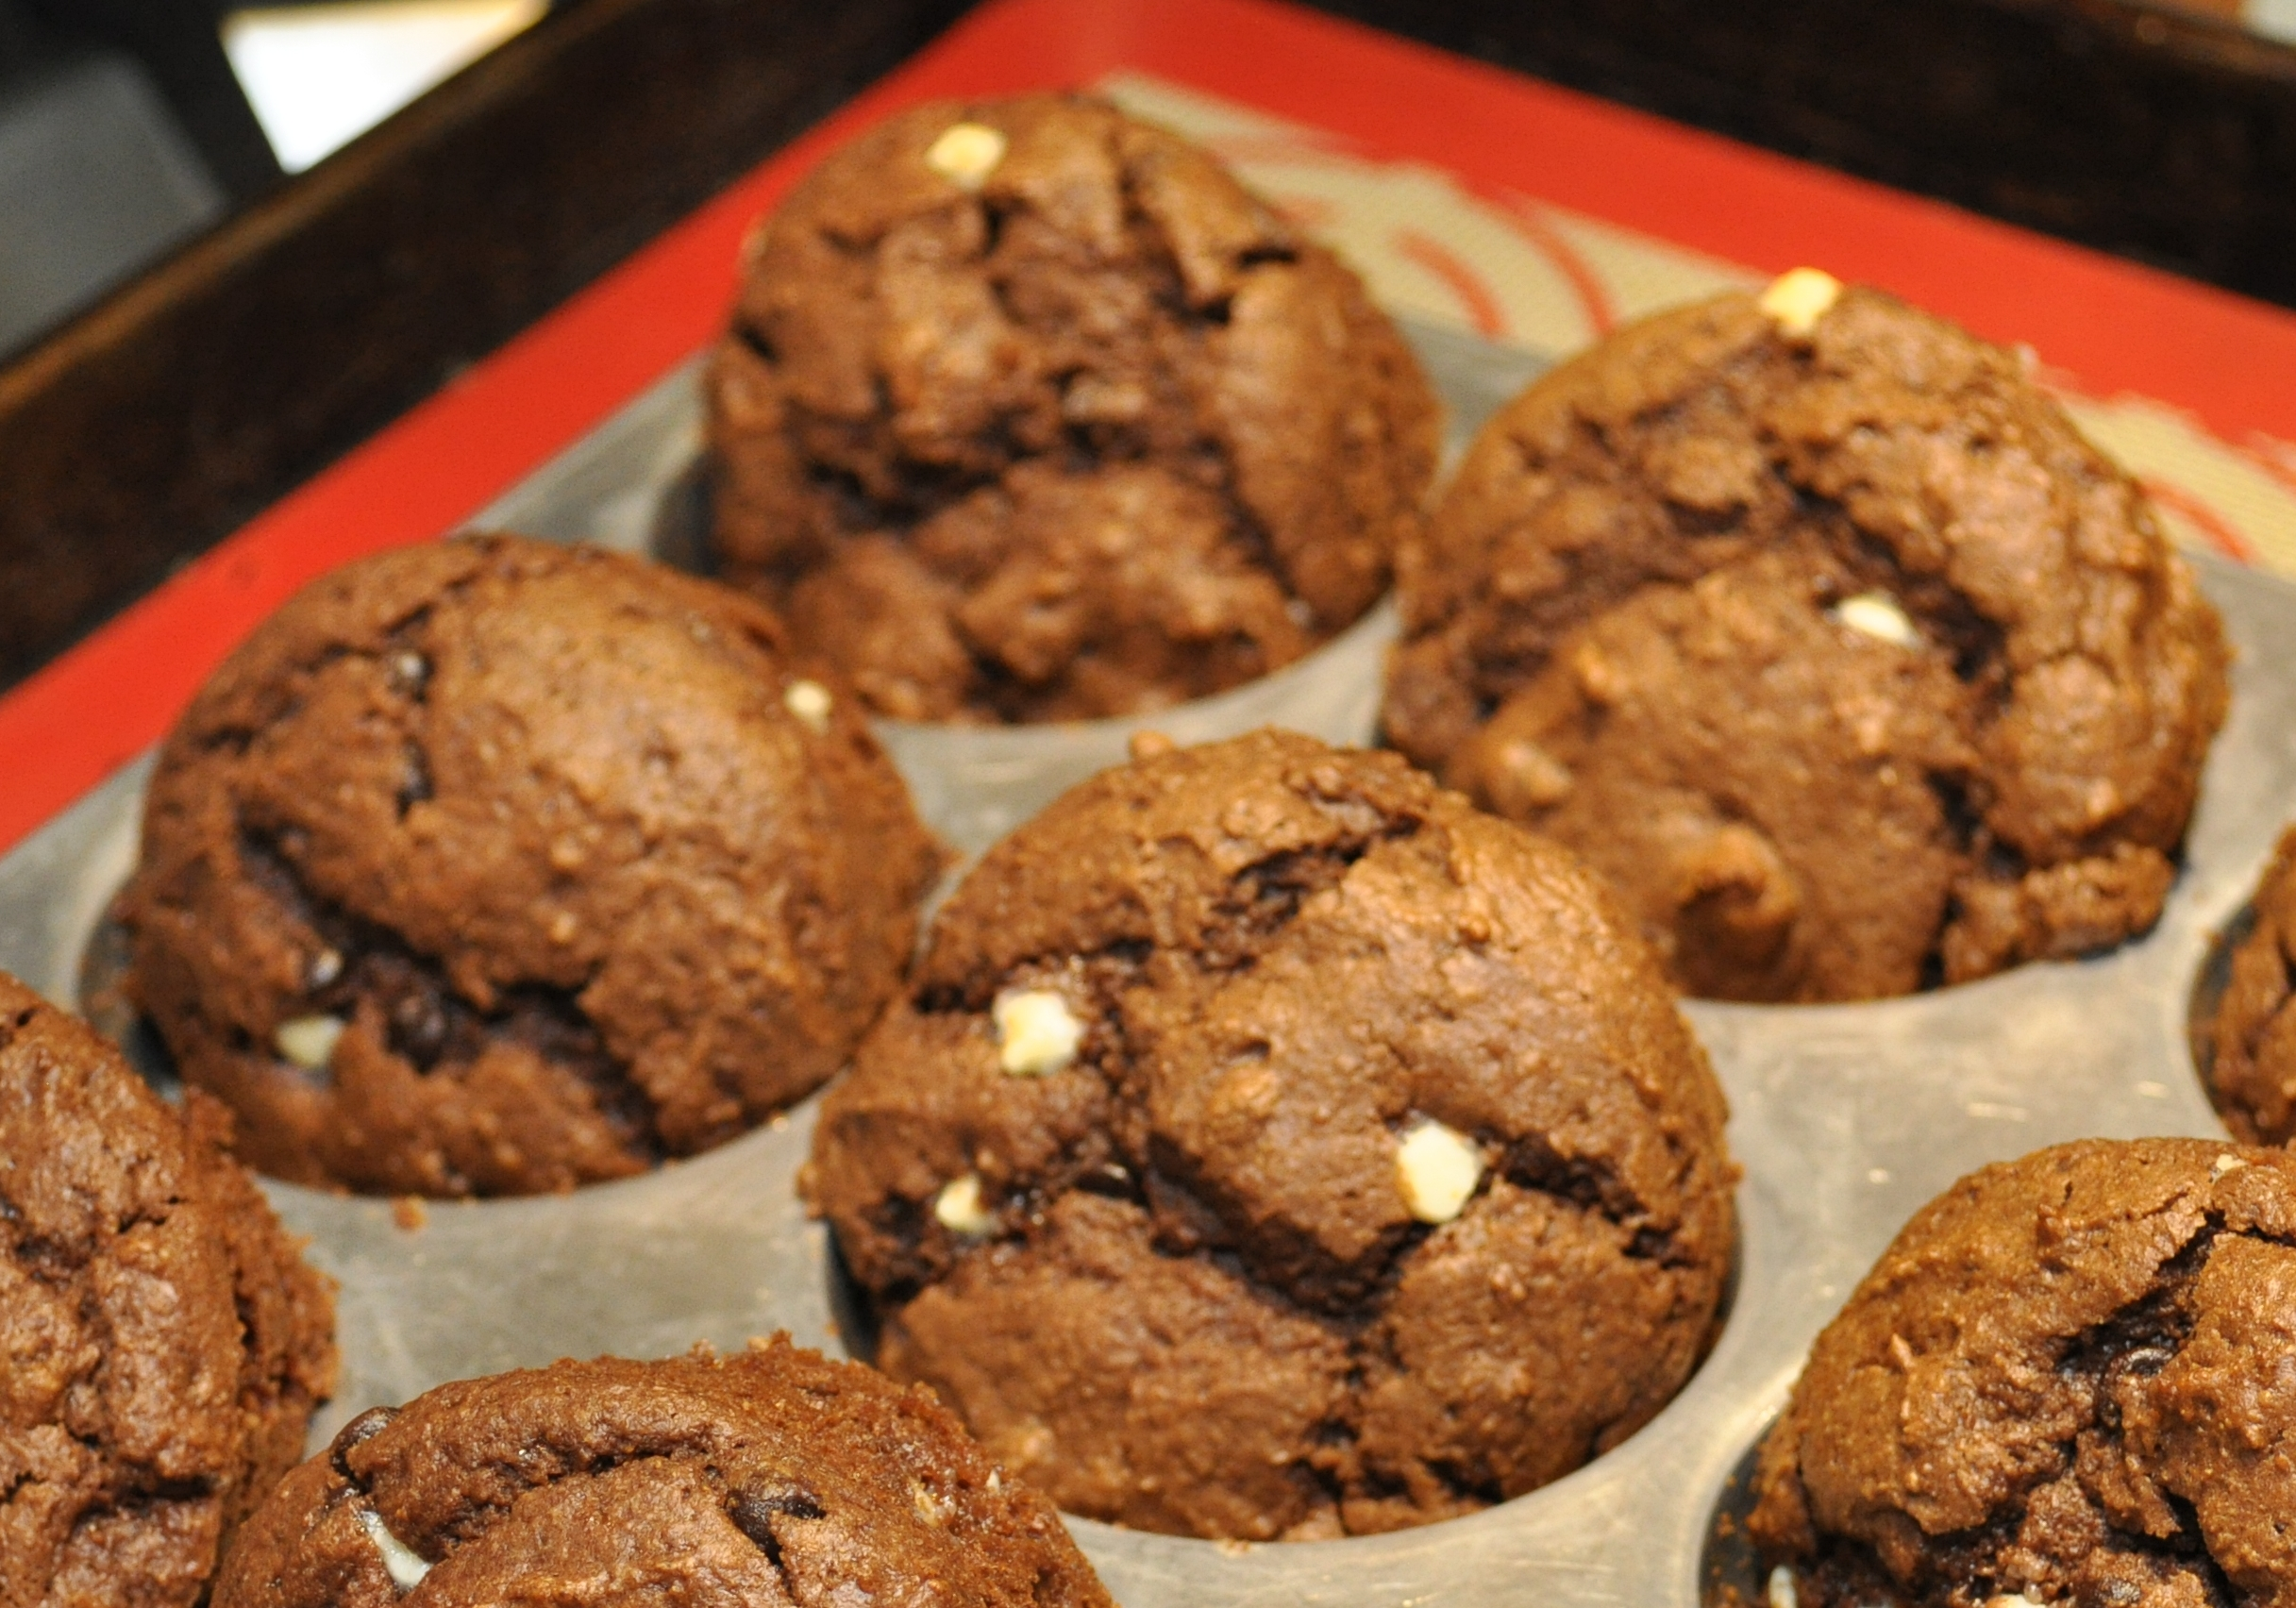 Chocolate Chocolate Chip Muffins